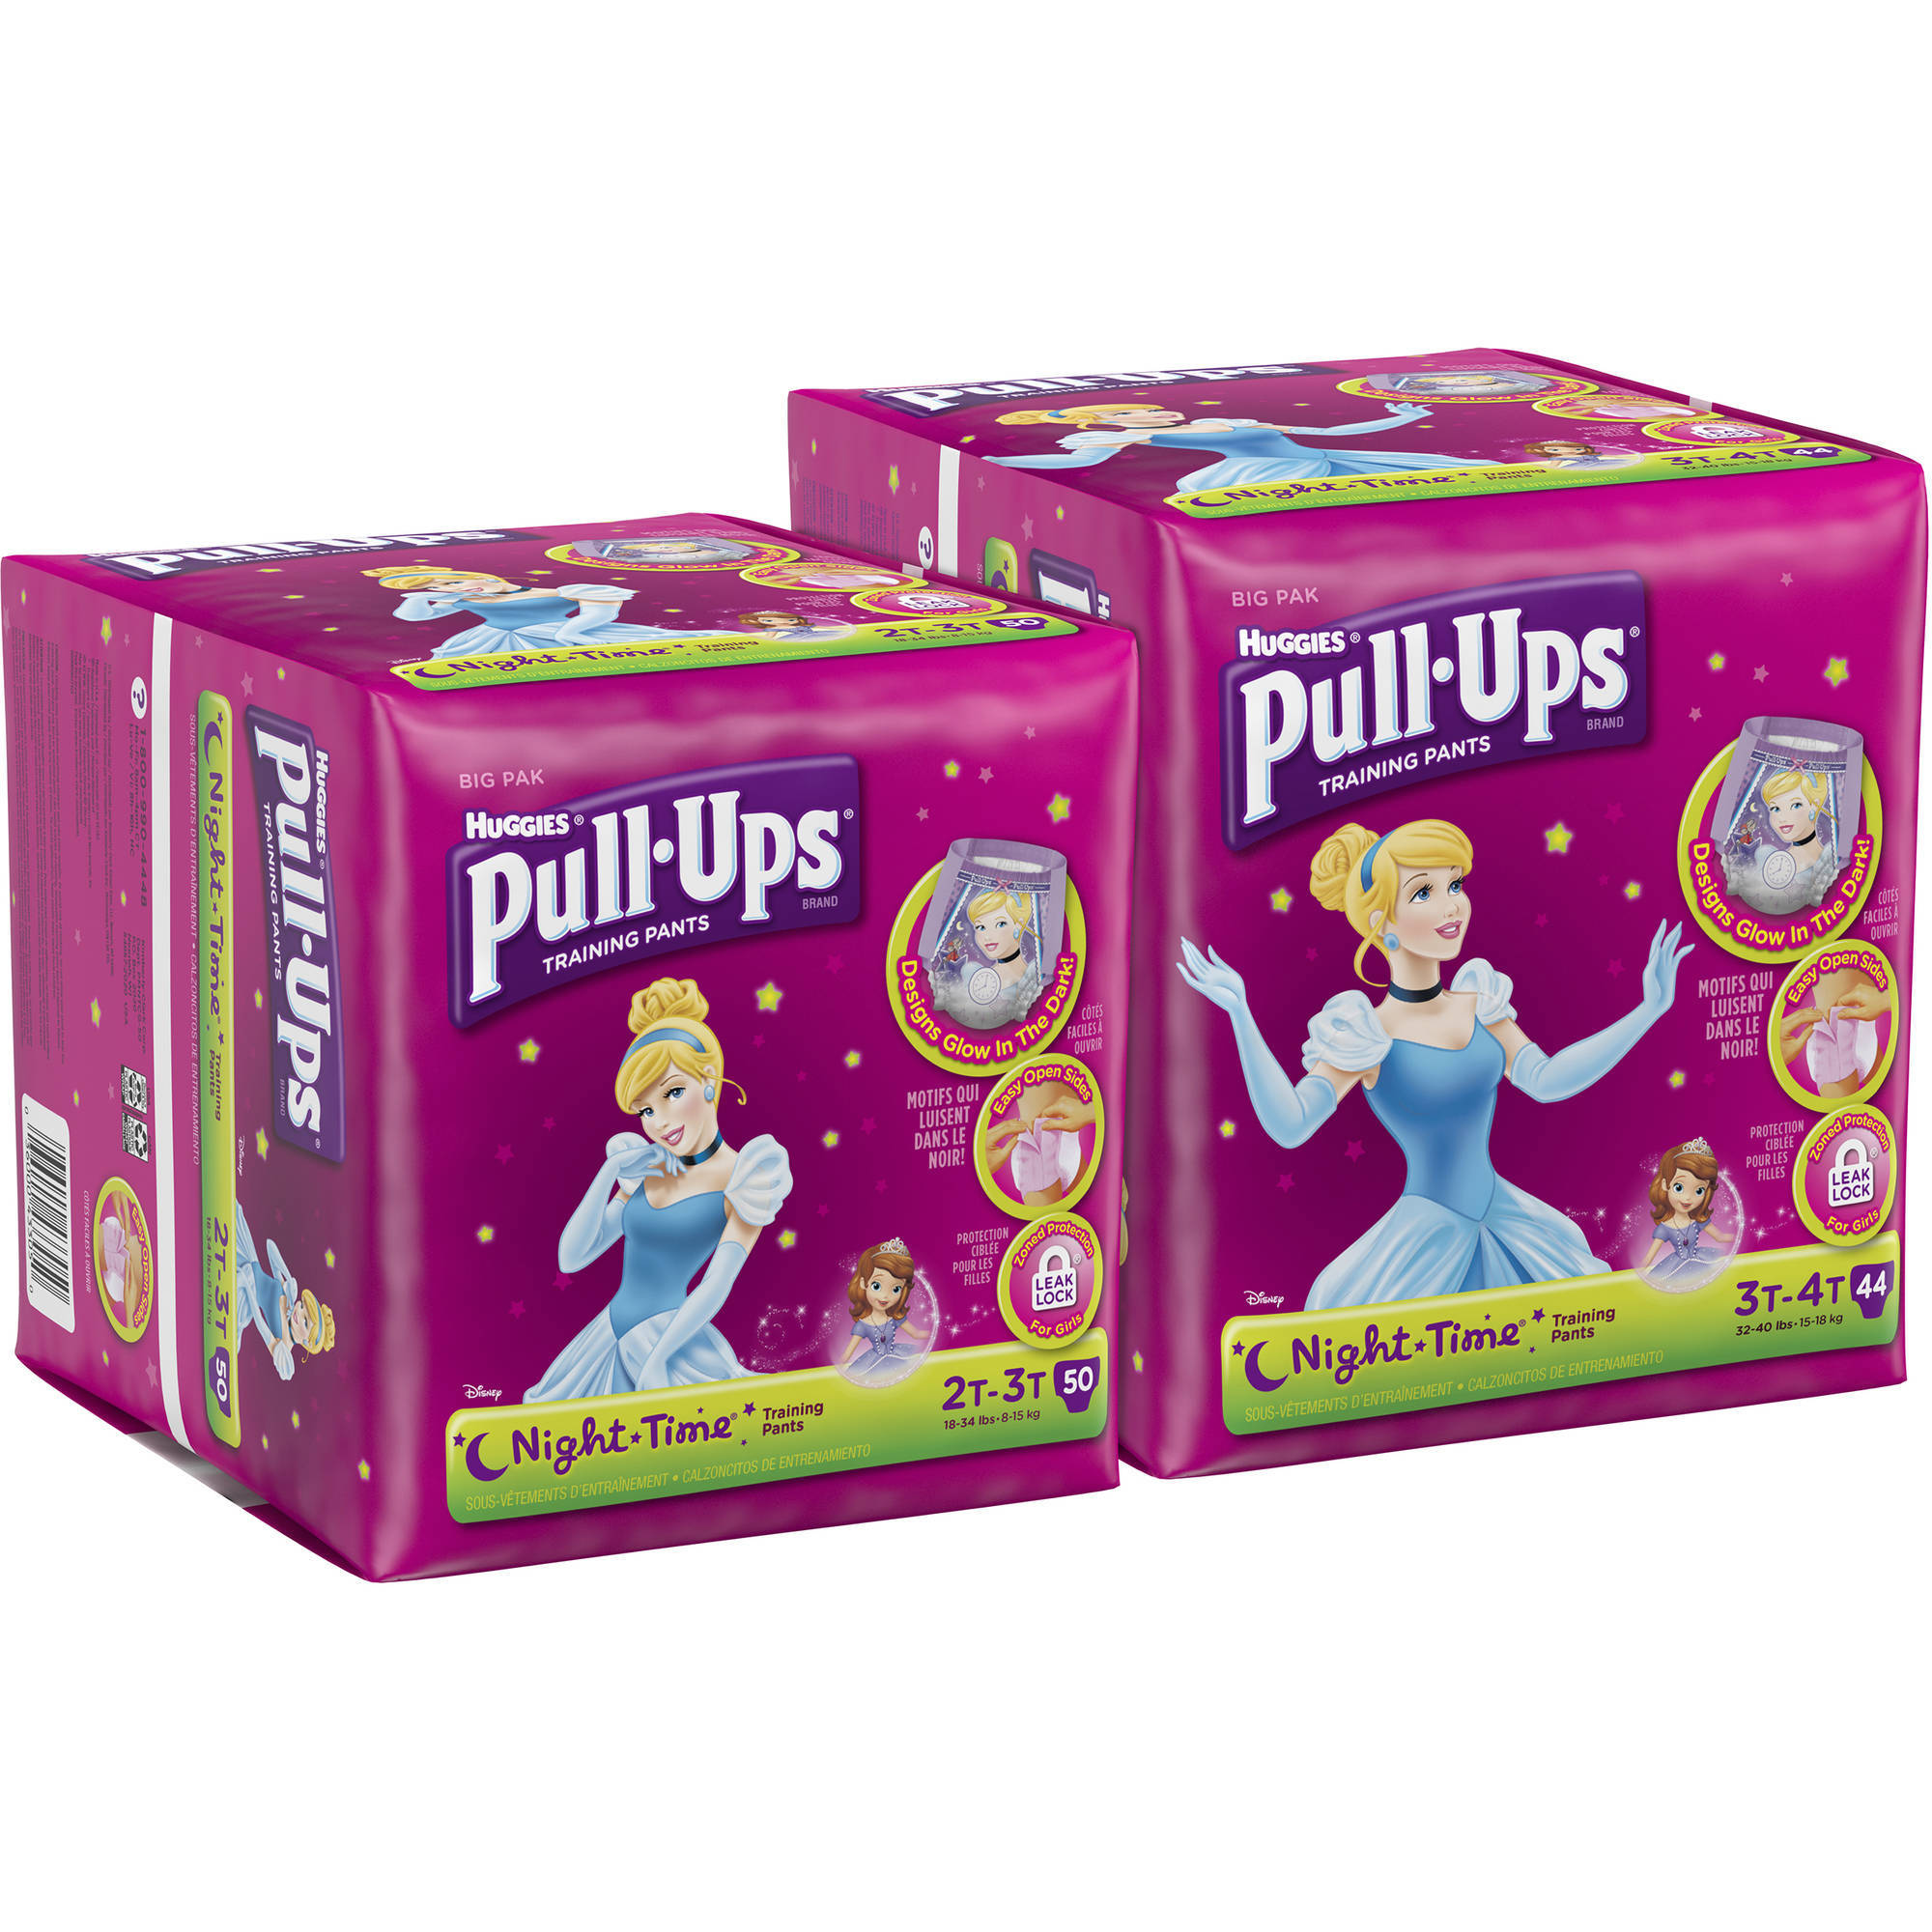 HUGGIES Pull-Ups Girls' Night-Time Training Pants, Big Pak, (Choose Your Size)